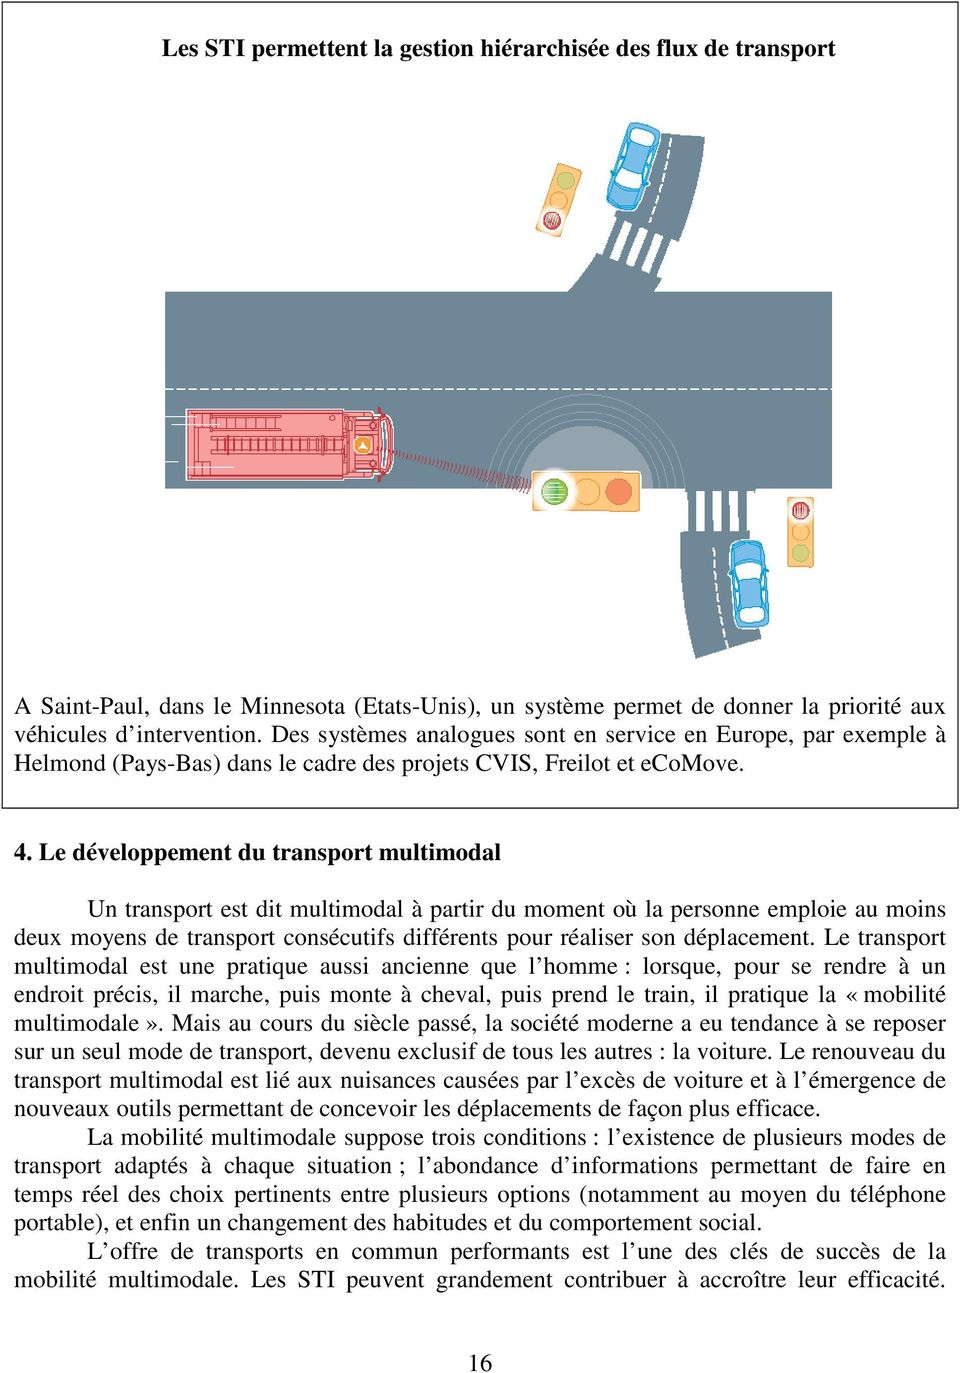 Le développement du transport multimodal Un transport est dit multimodal à partir du moment où la personne emploie au moins deux moyens de transport consécutifs différents pour réaliser son